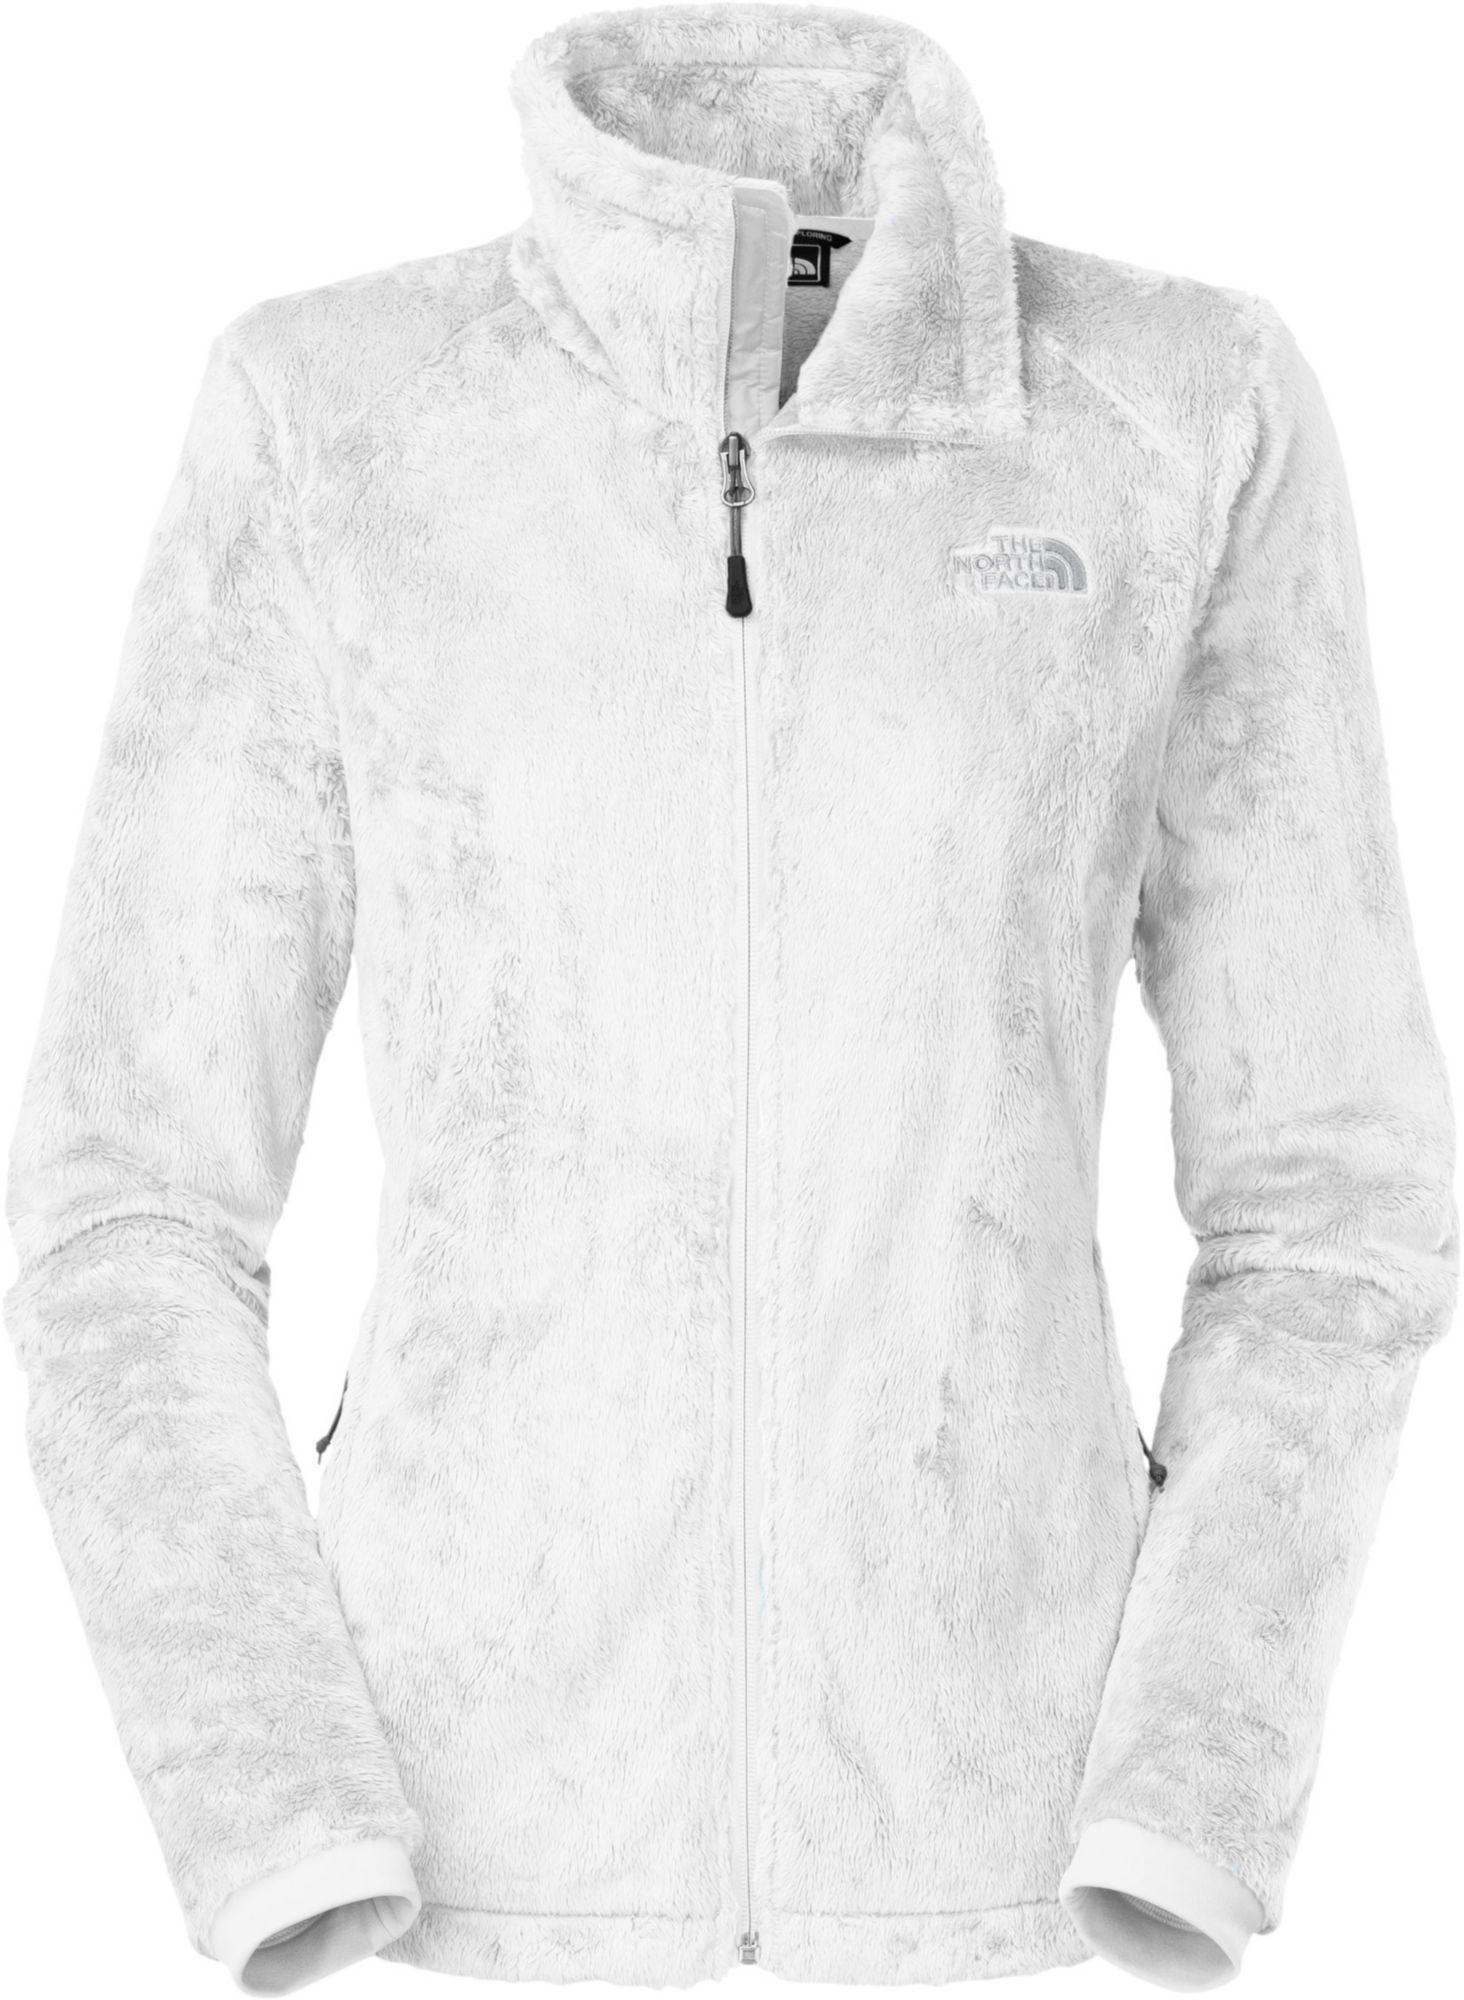 762a86ac9ac7 Lyst - The North Face Osito 2 Fleece Jacket in White